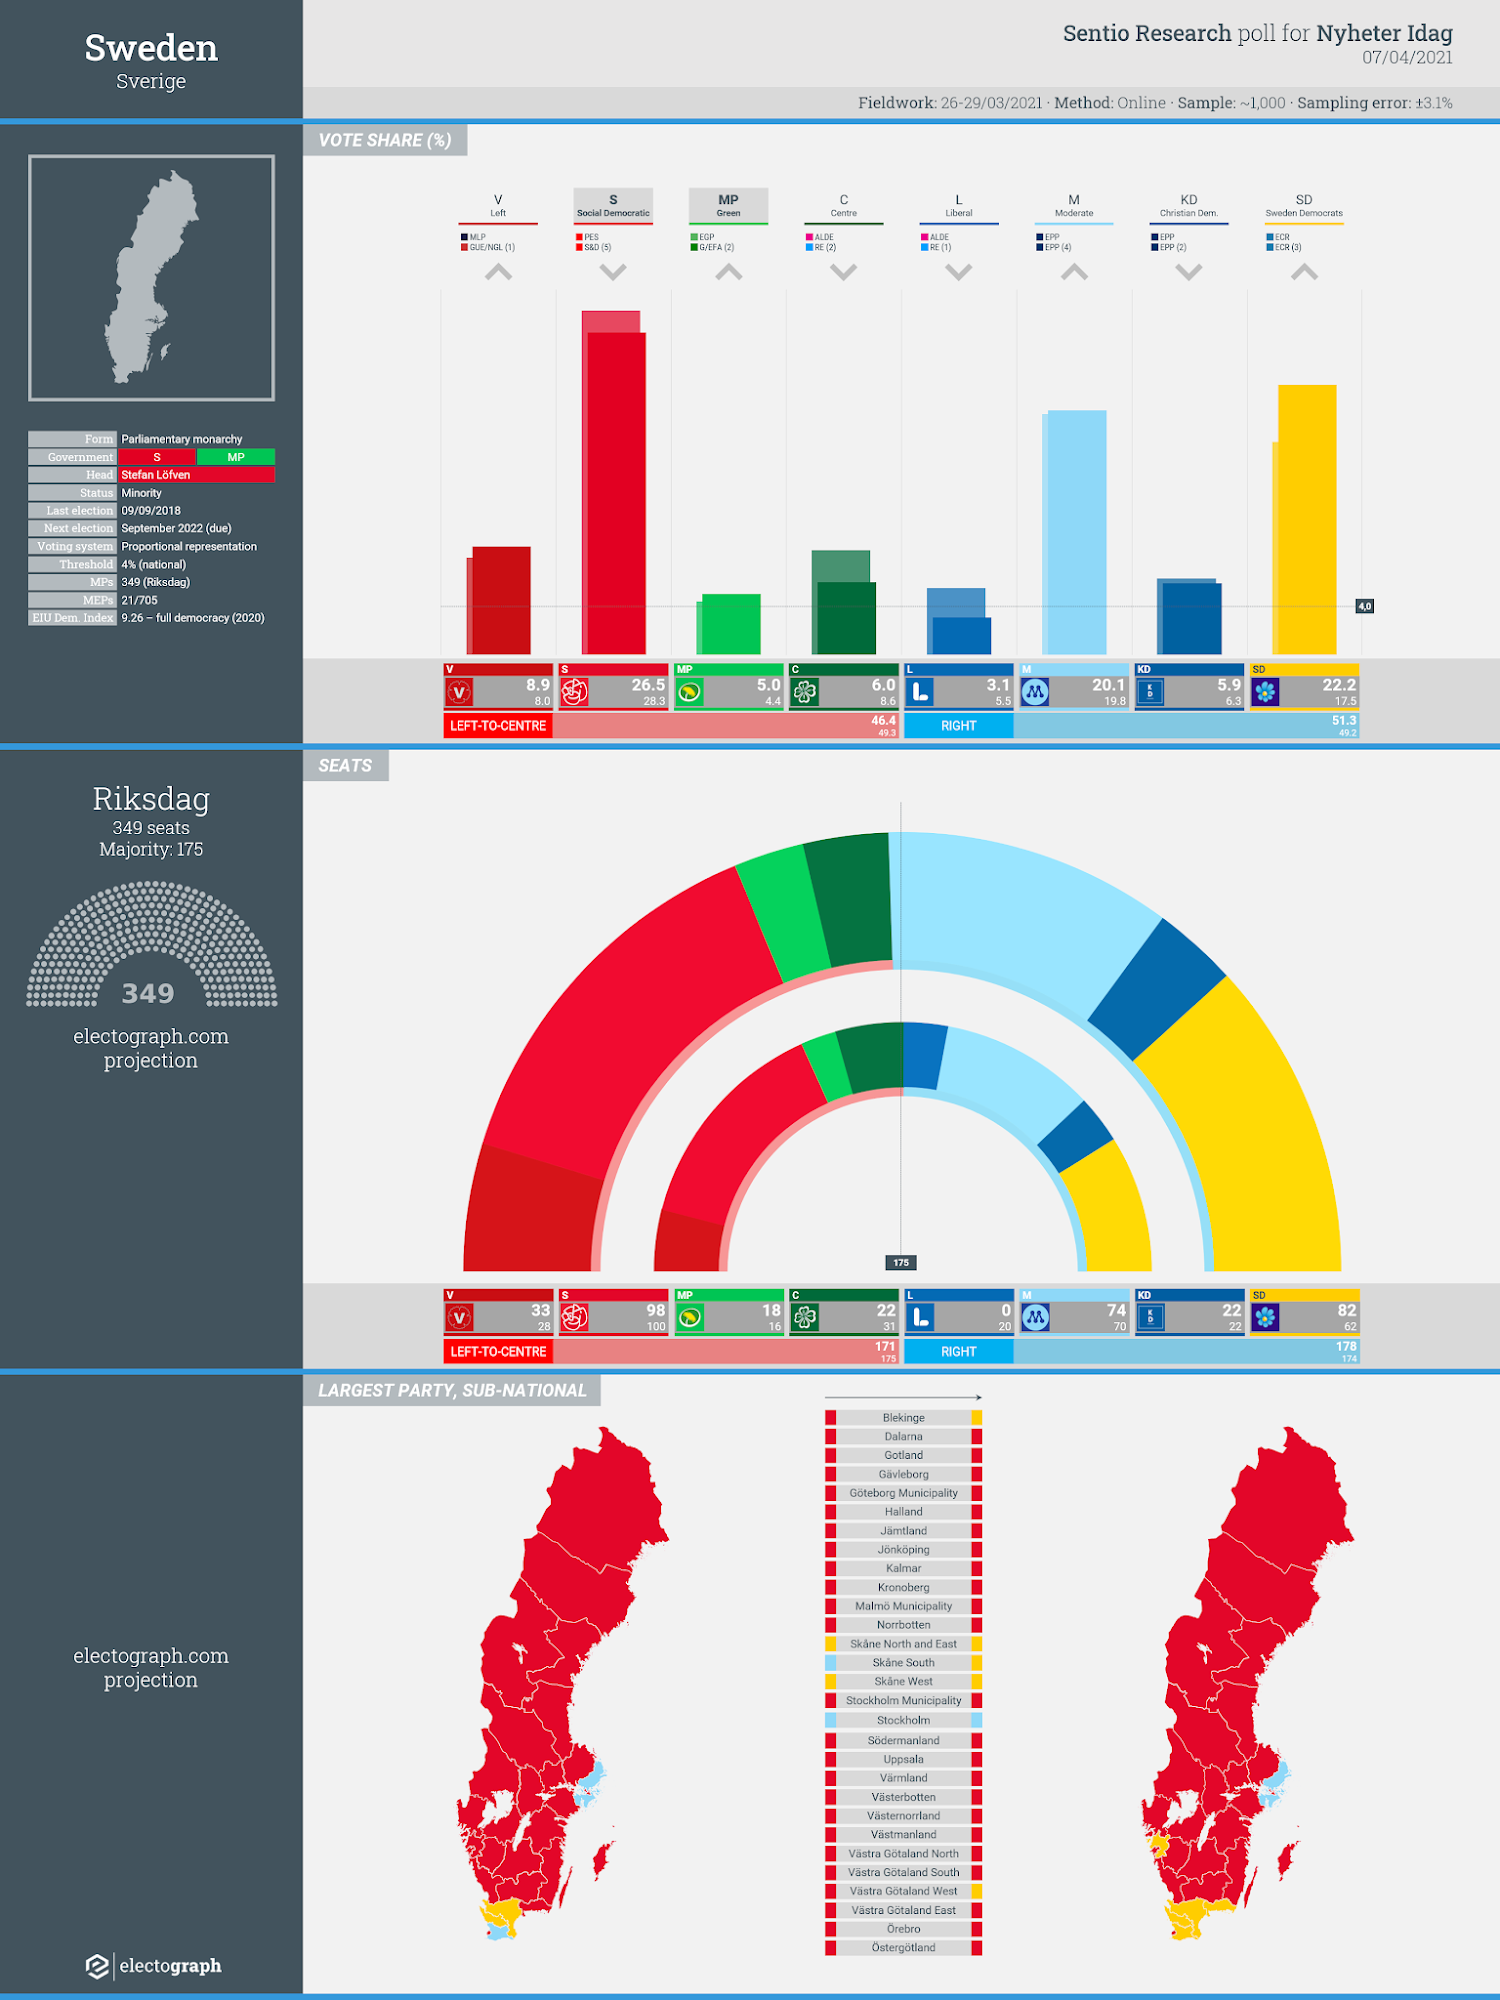 SWEDEN: Sentio Research poll chart for Nyheter Idag, 7 April 2021